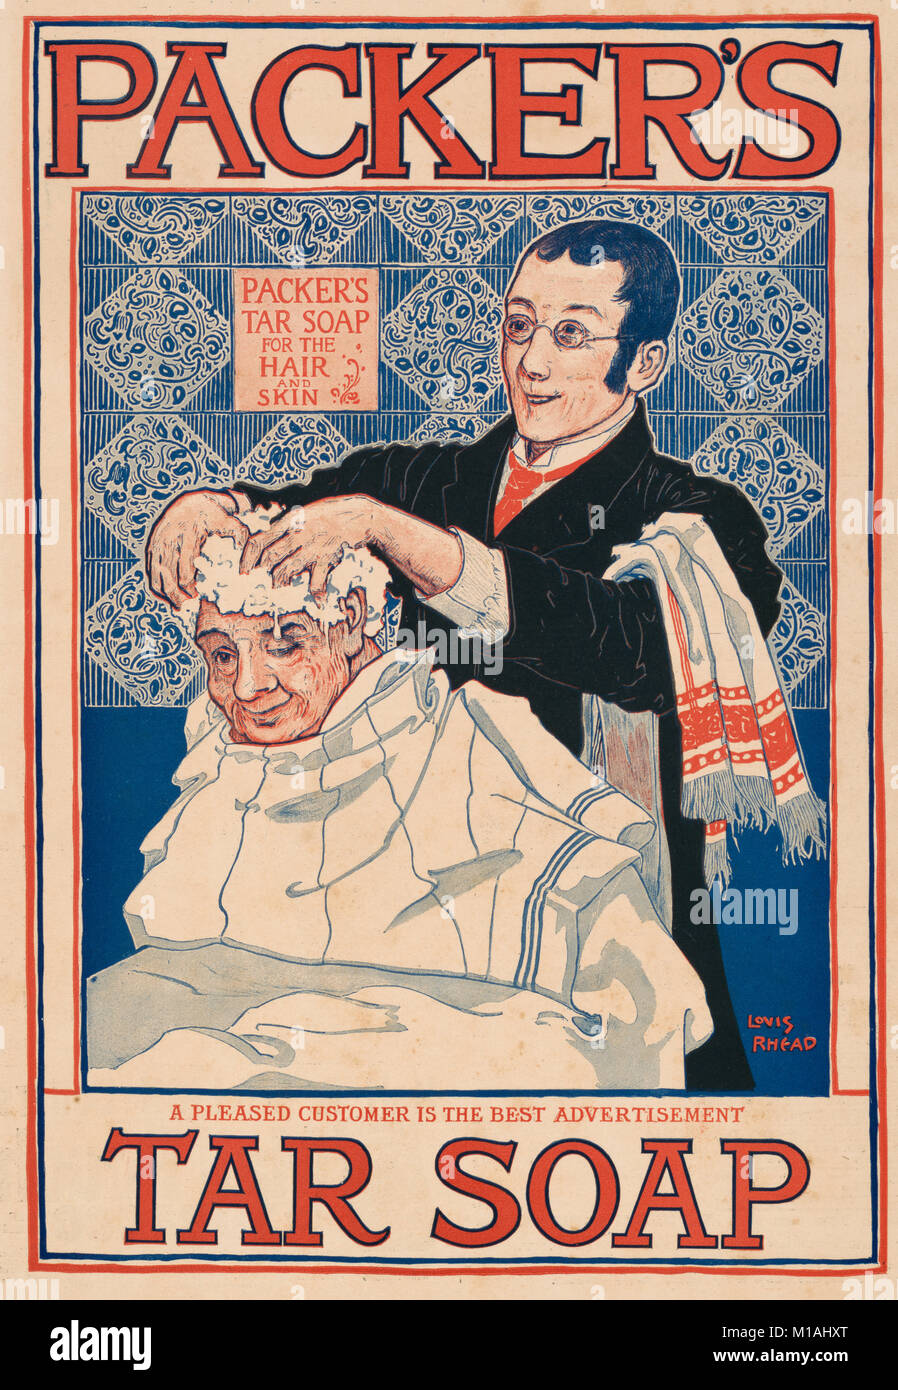 Packer's tar soap Advertisement, circa 1915 - Poster shows a man shampooing another man's hair. - Stock Image